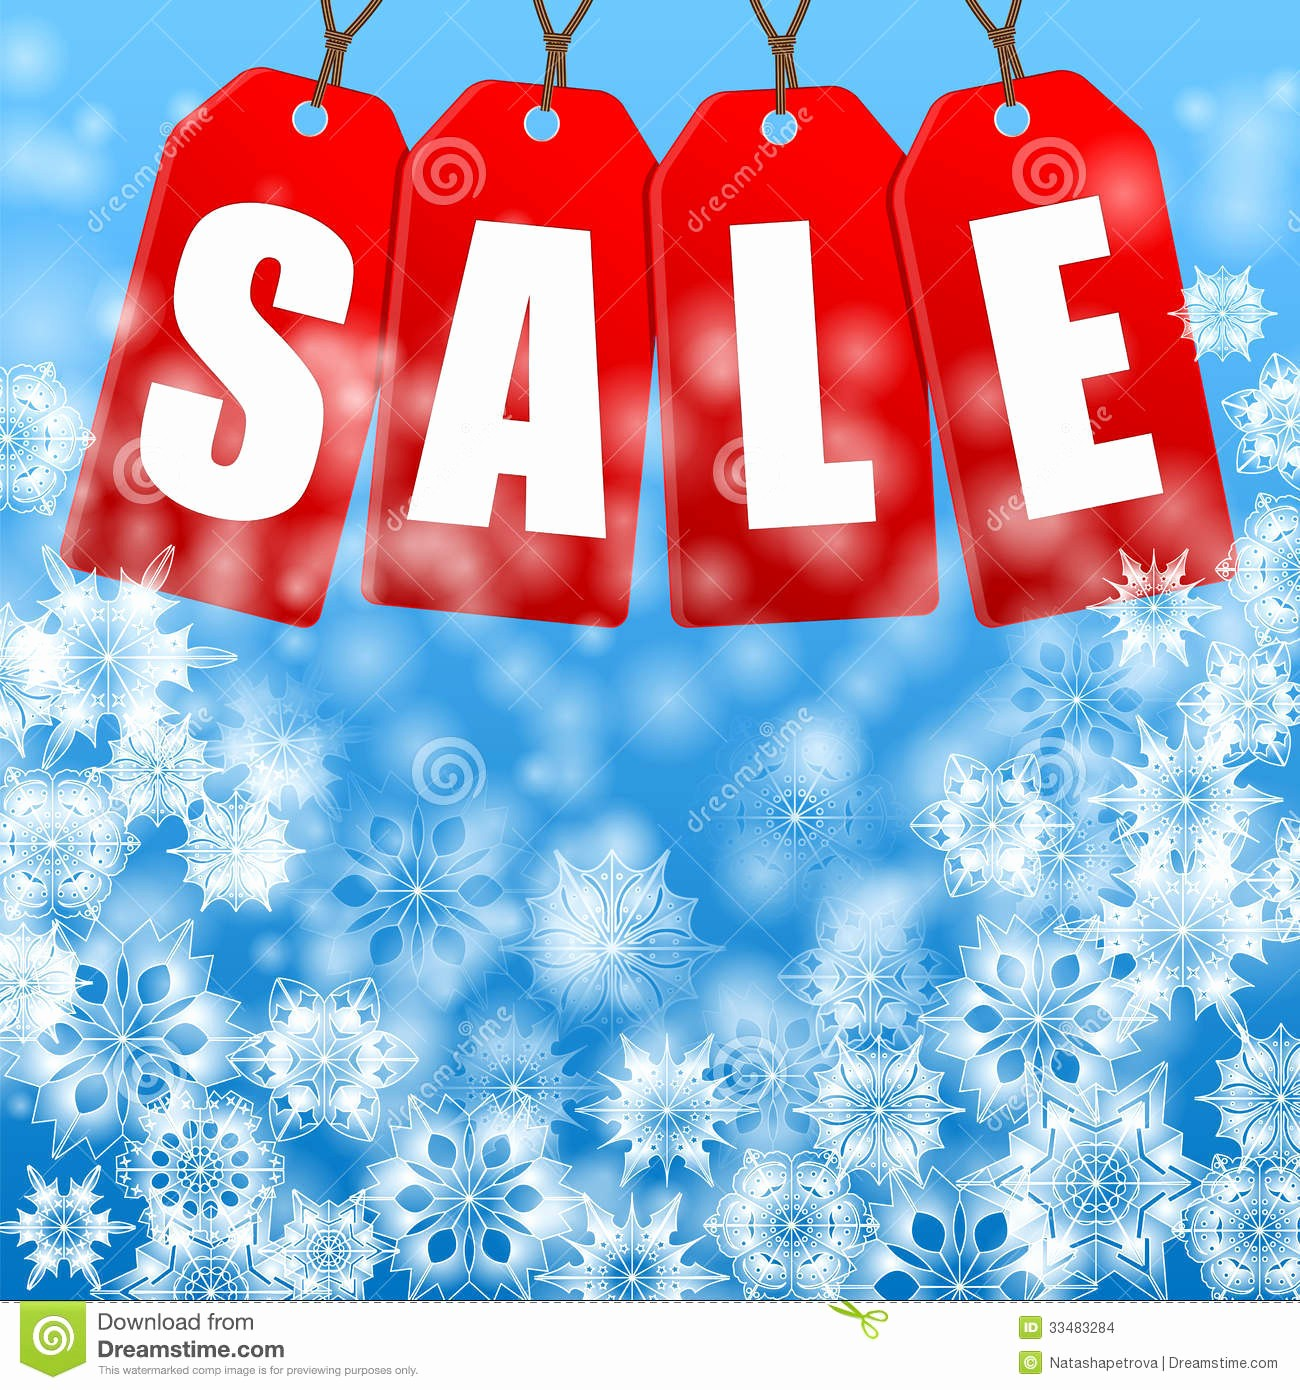 Christmas Background Images for Word Awesome Seasonal Christmas Sale Stock Vector Illustration Of